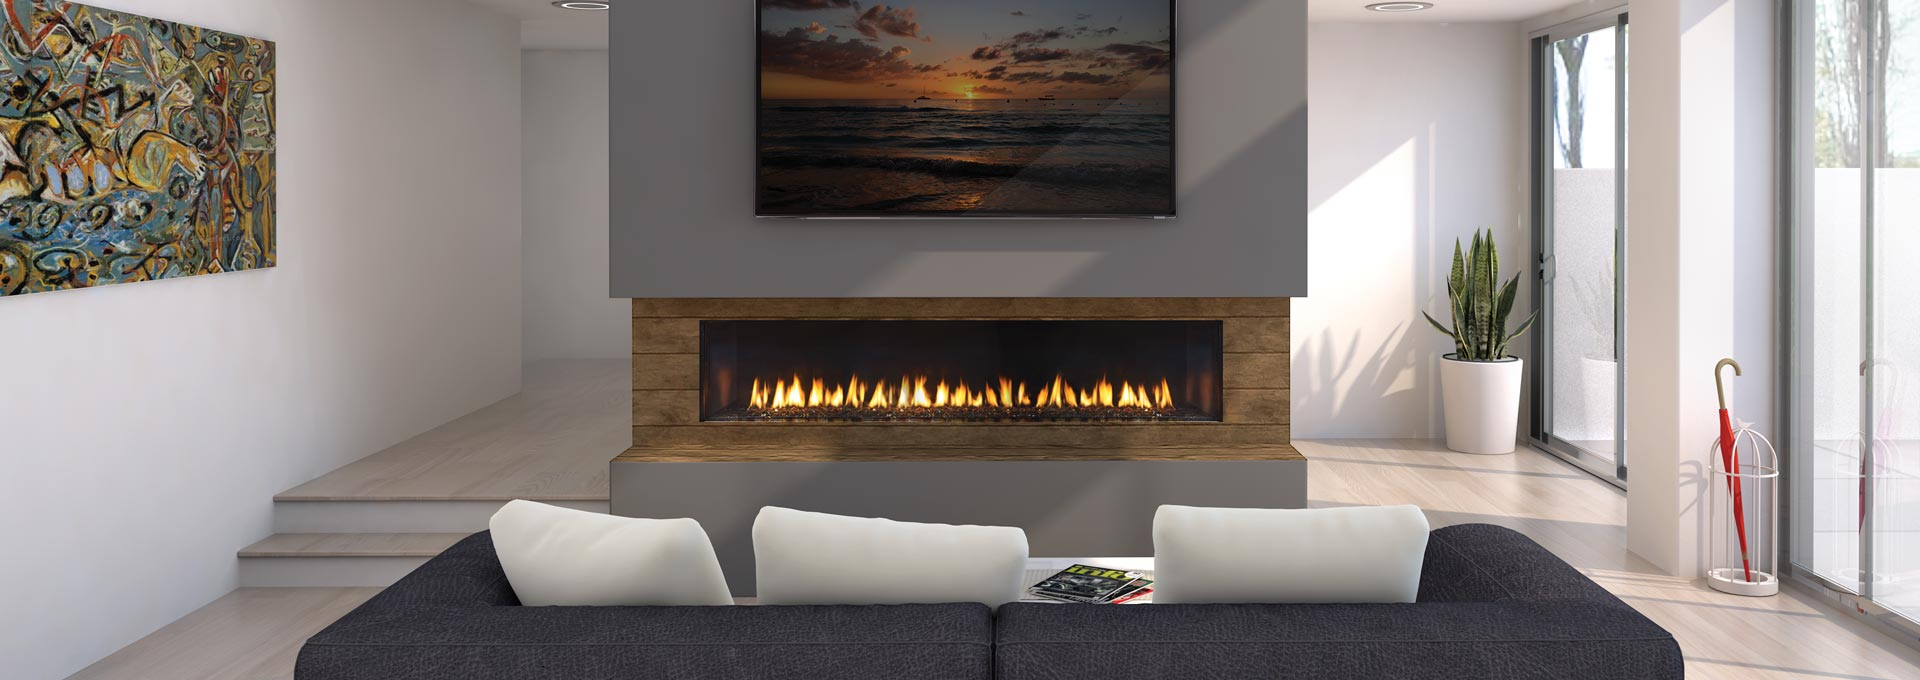 oblica fireplace melbourne freestanding of alcor x photo designer amazing fireplaces modern